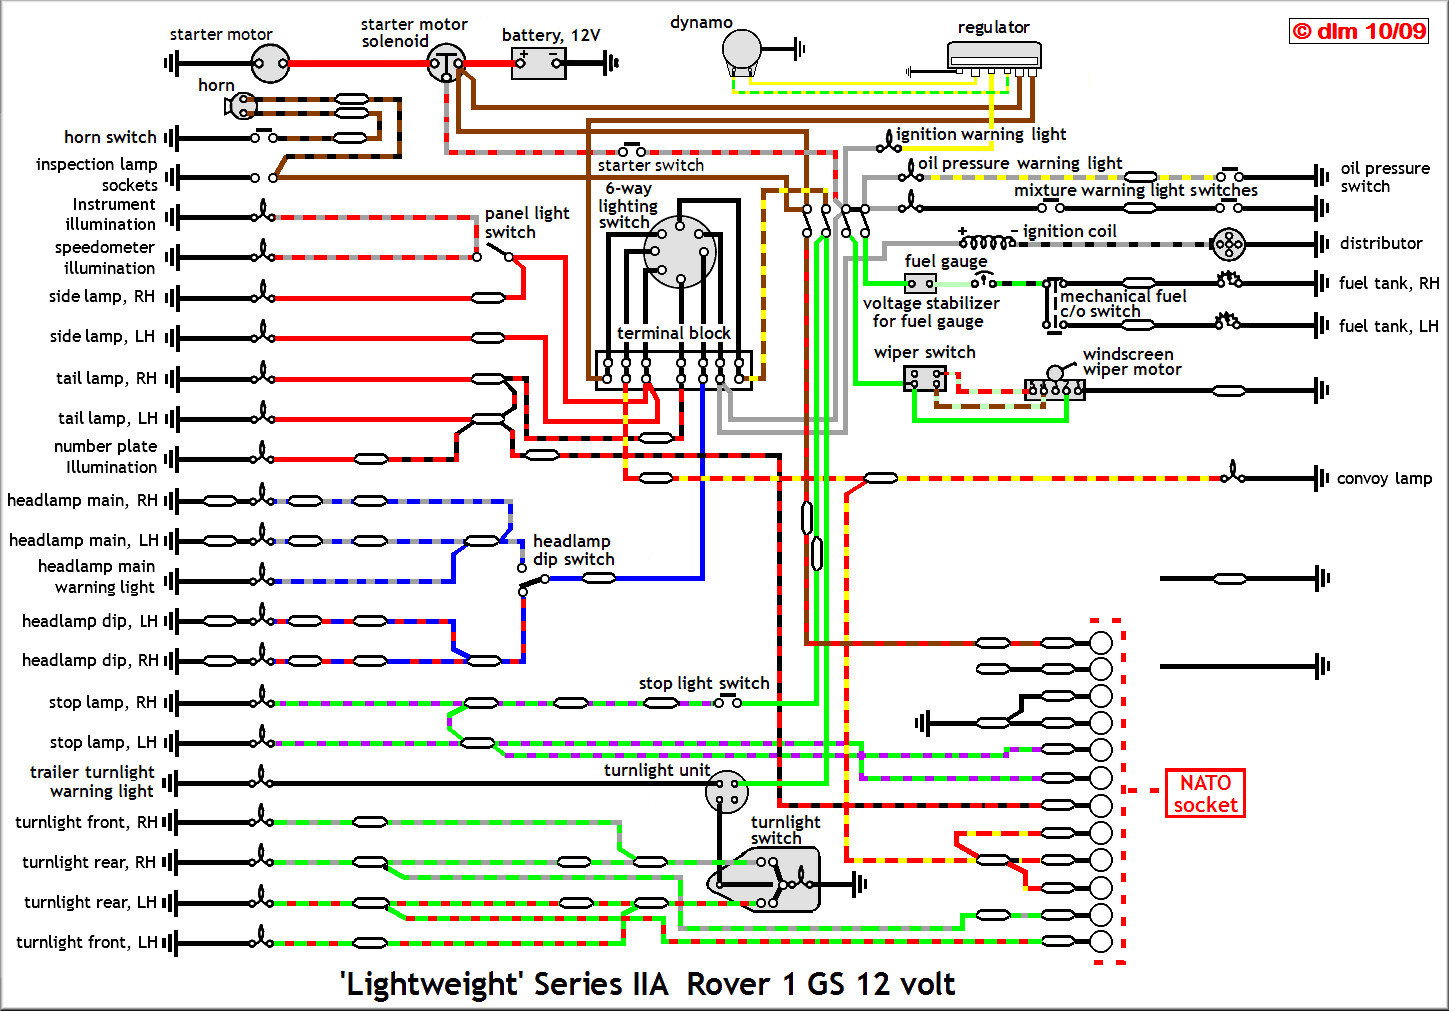 Series 2A, Rover 1, 12v Circuit Diagram ...